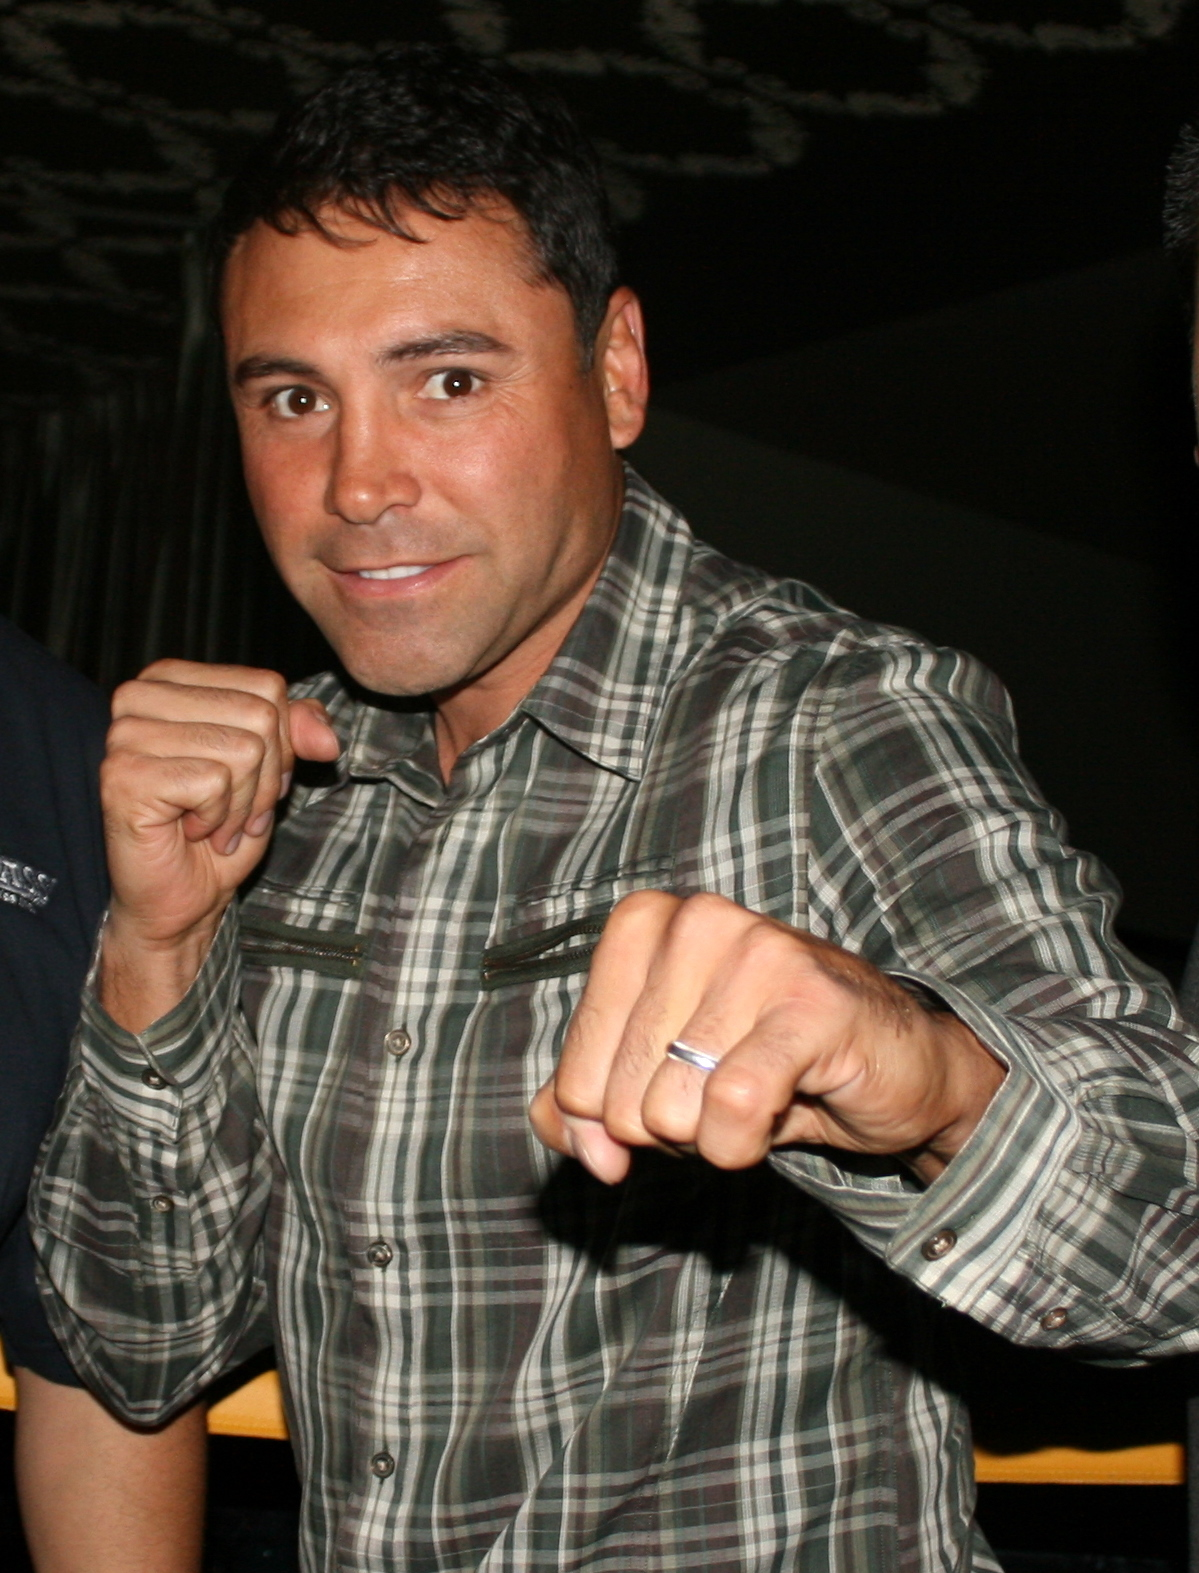 File:Oscar De La Hoya, Feb 2011.jpg However, now that Oscar De La Hoya is ...